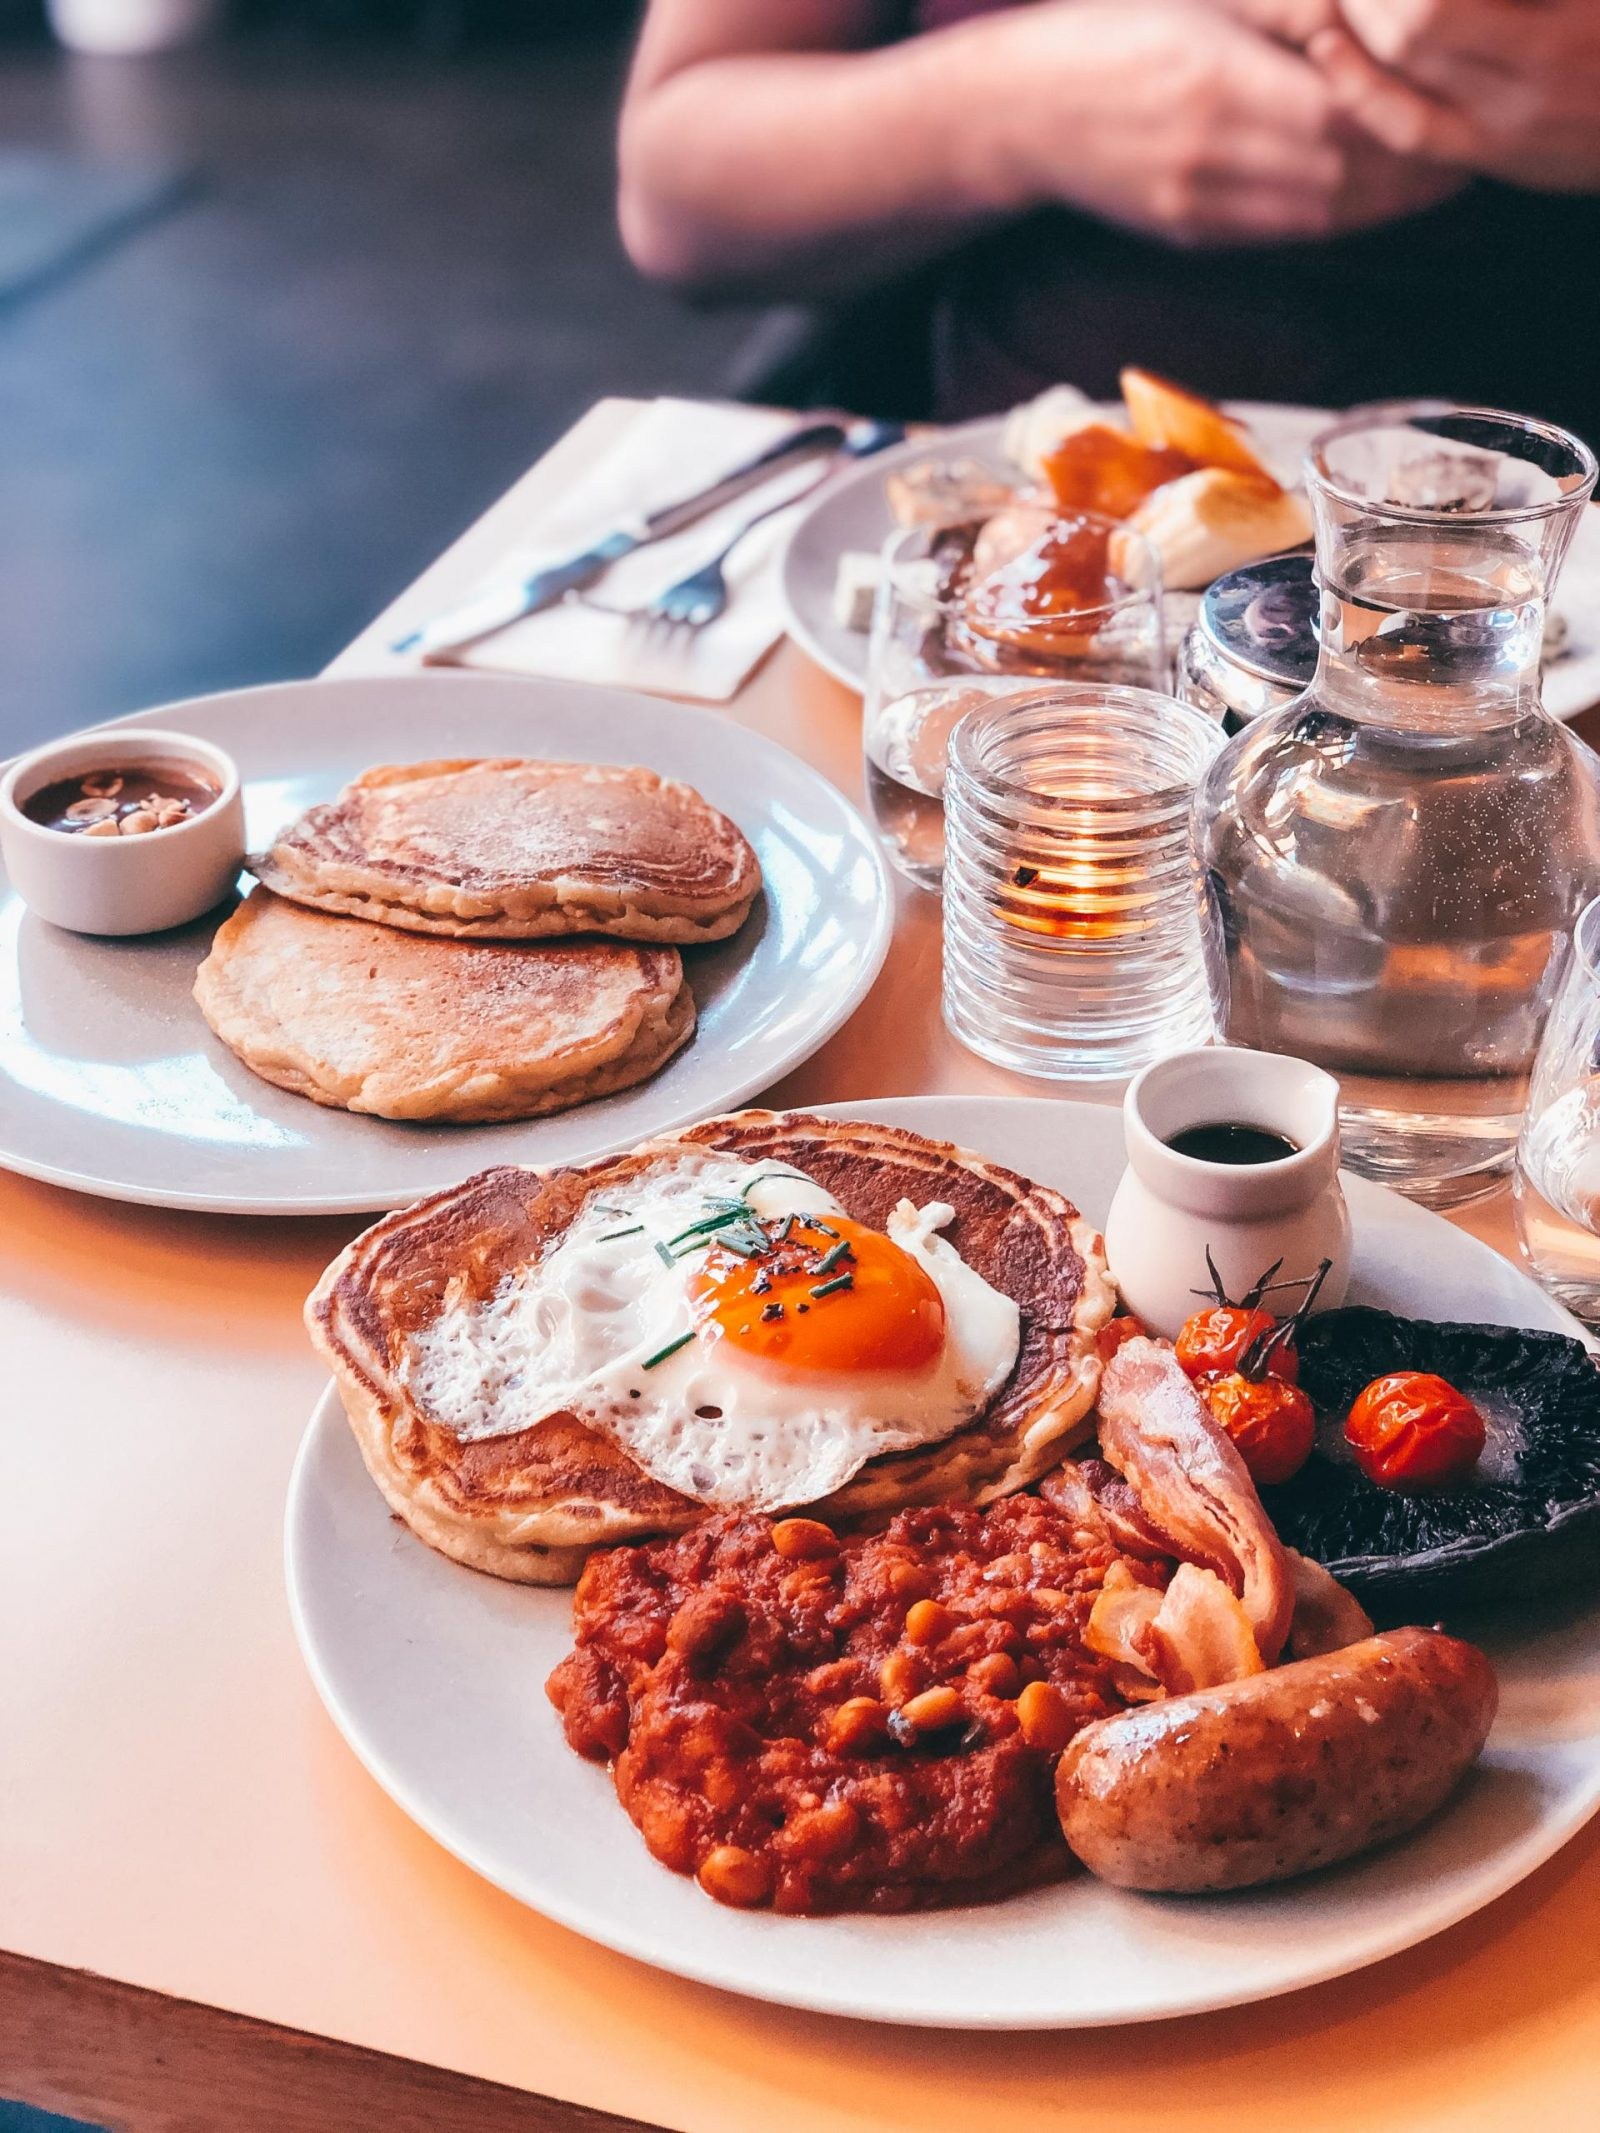 Where the pancakes are 'English Breakfast'